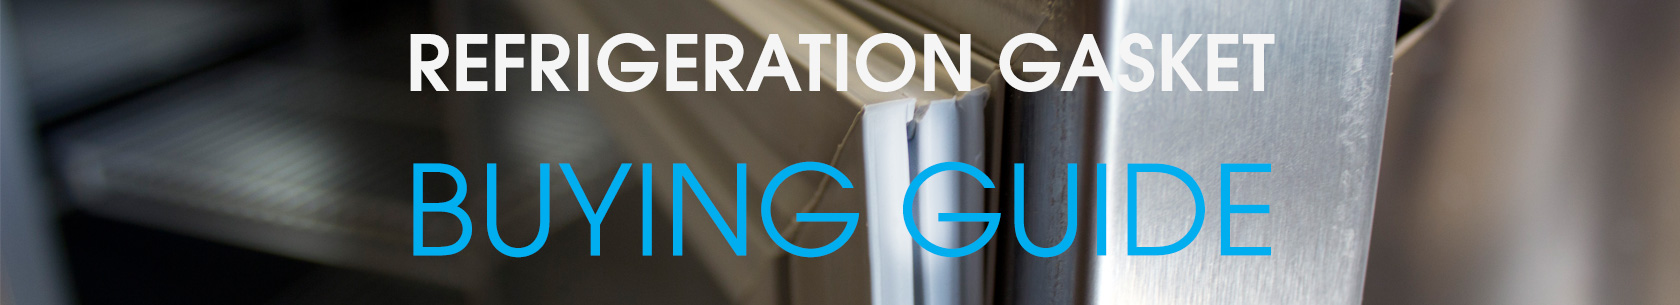 Refrigeration Gaskets Buying Guide